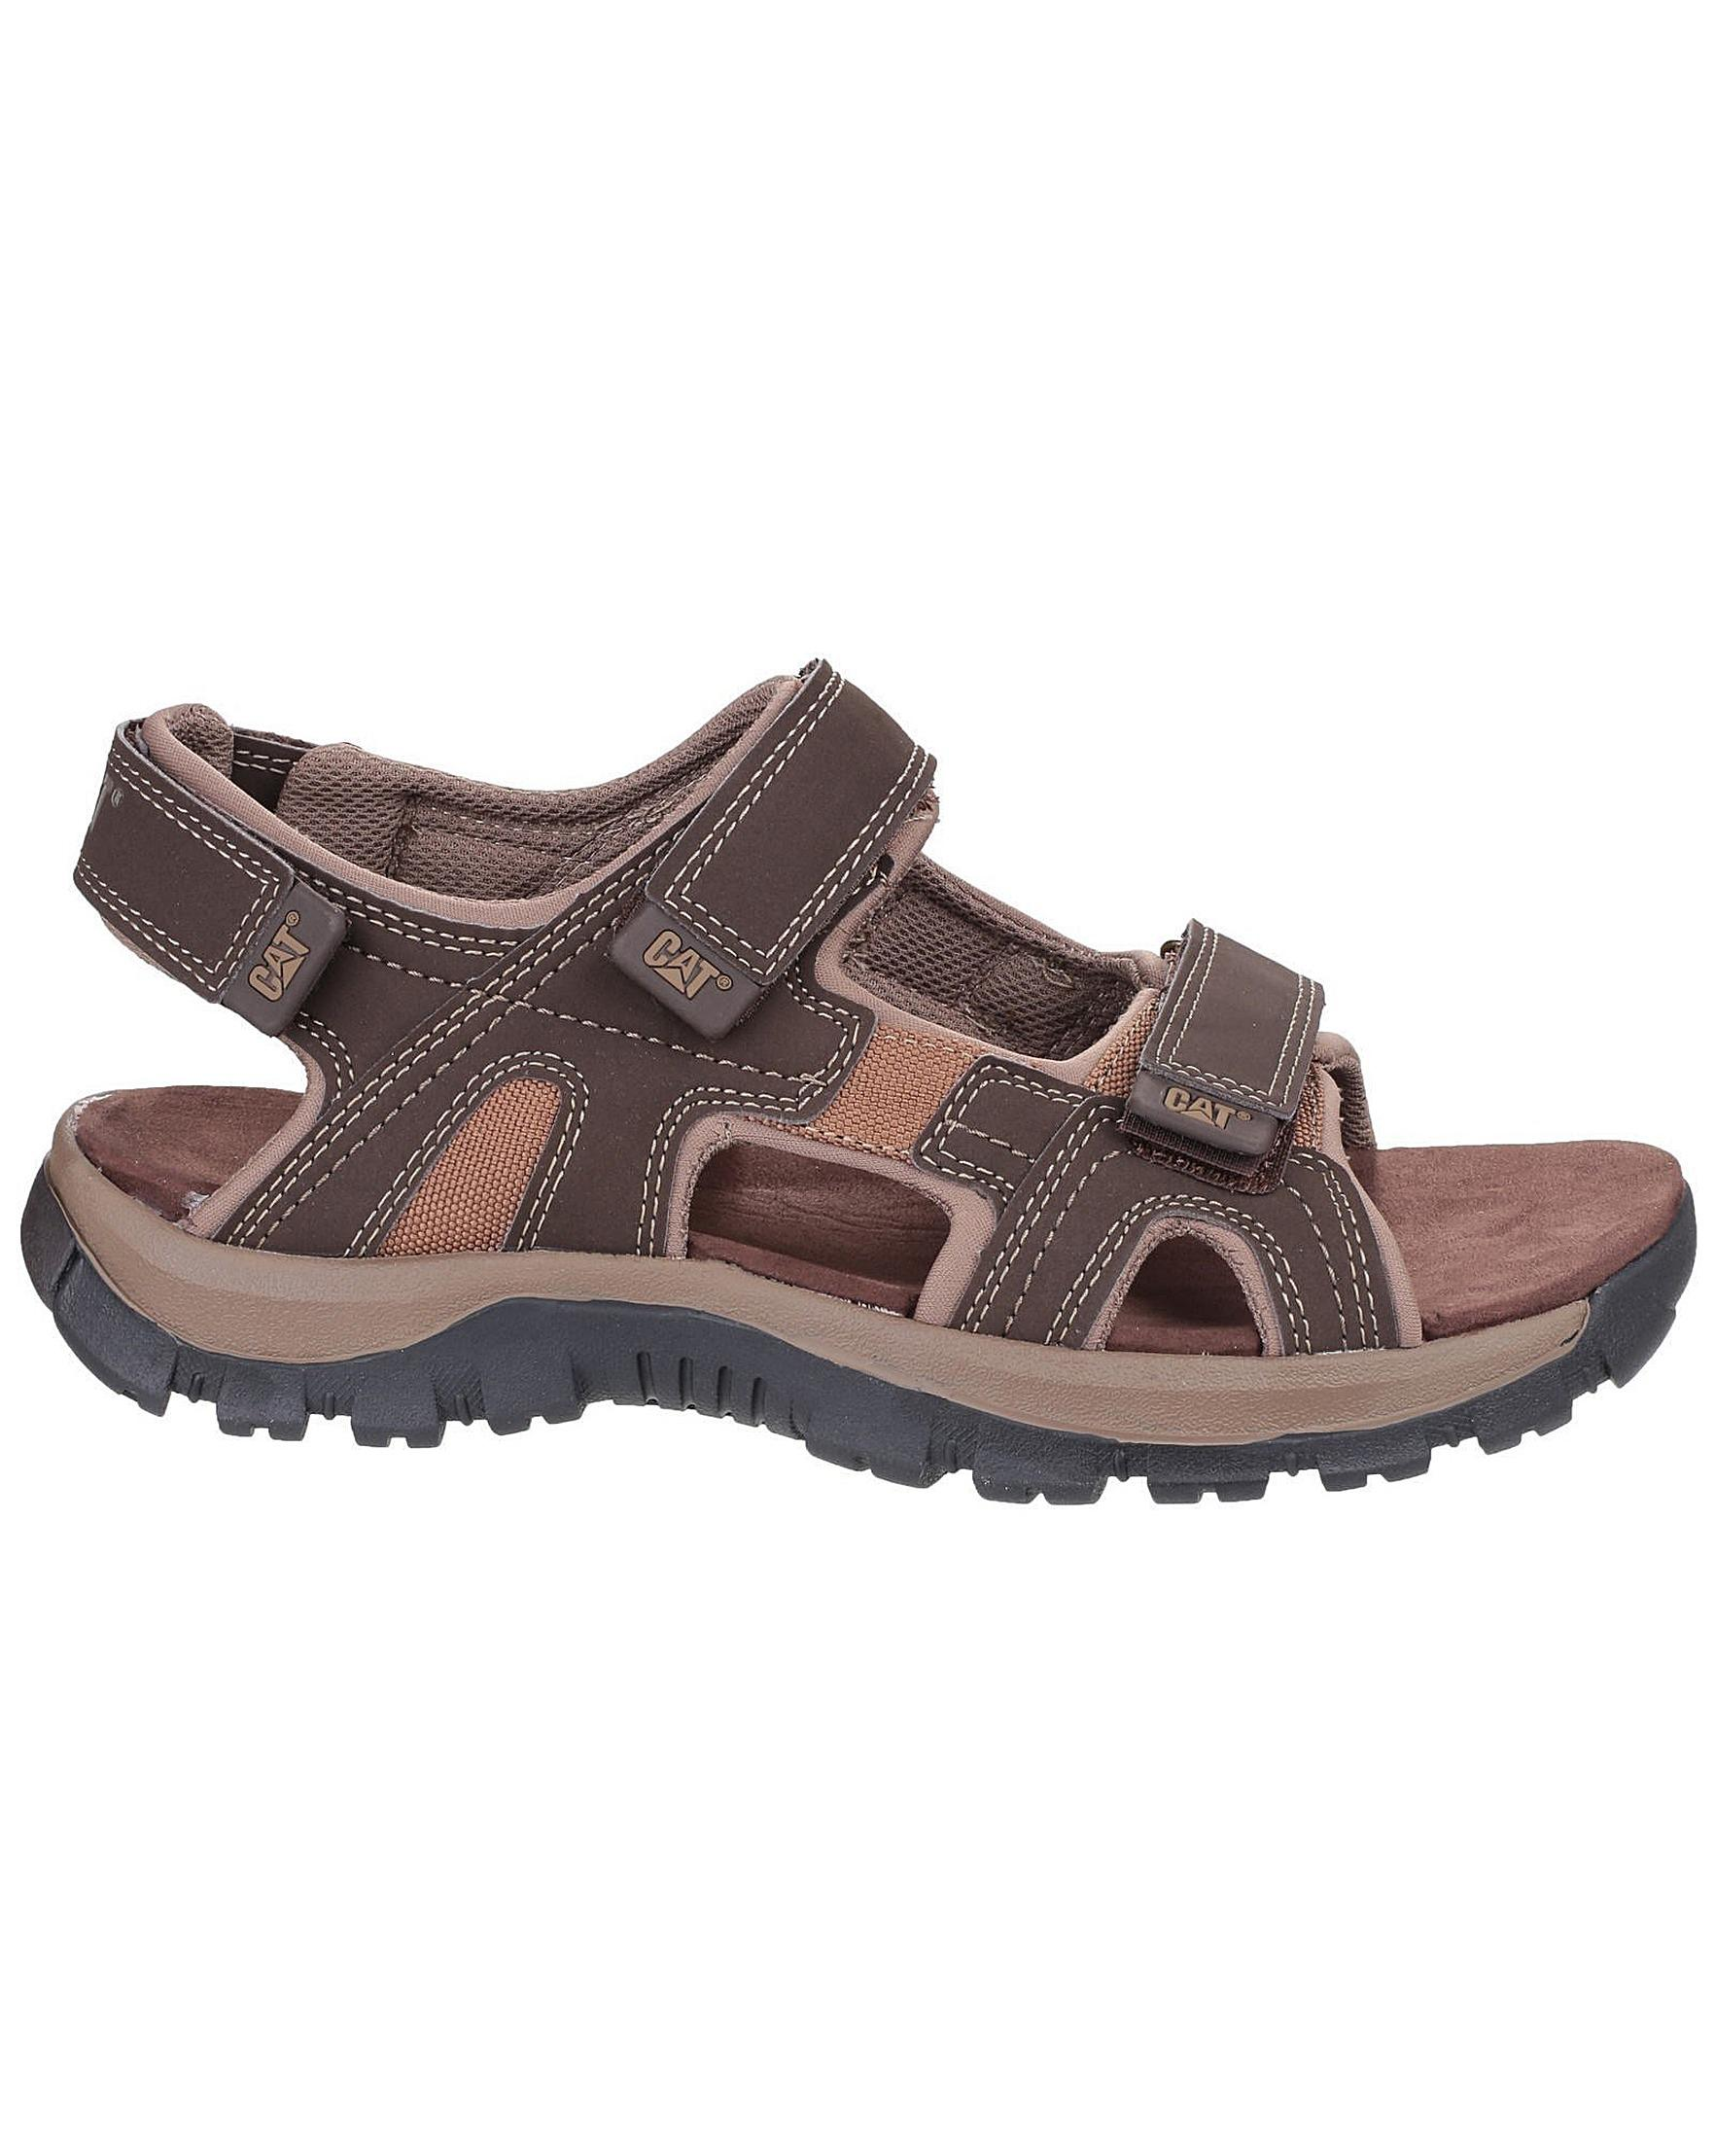 2e8d23bd6 Caterpillar Giles Sandals in Brown for Men - Save 4% - Lyst